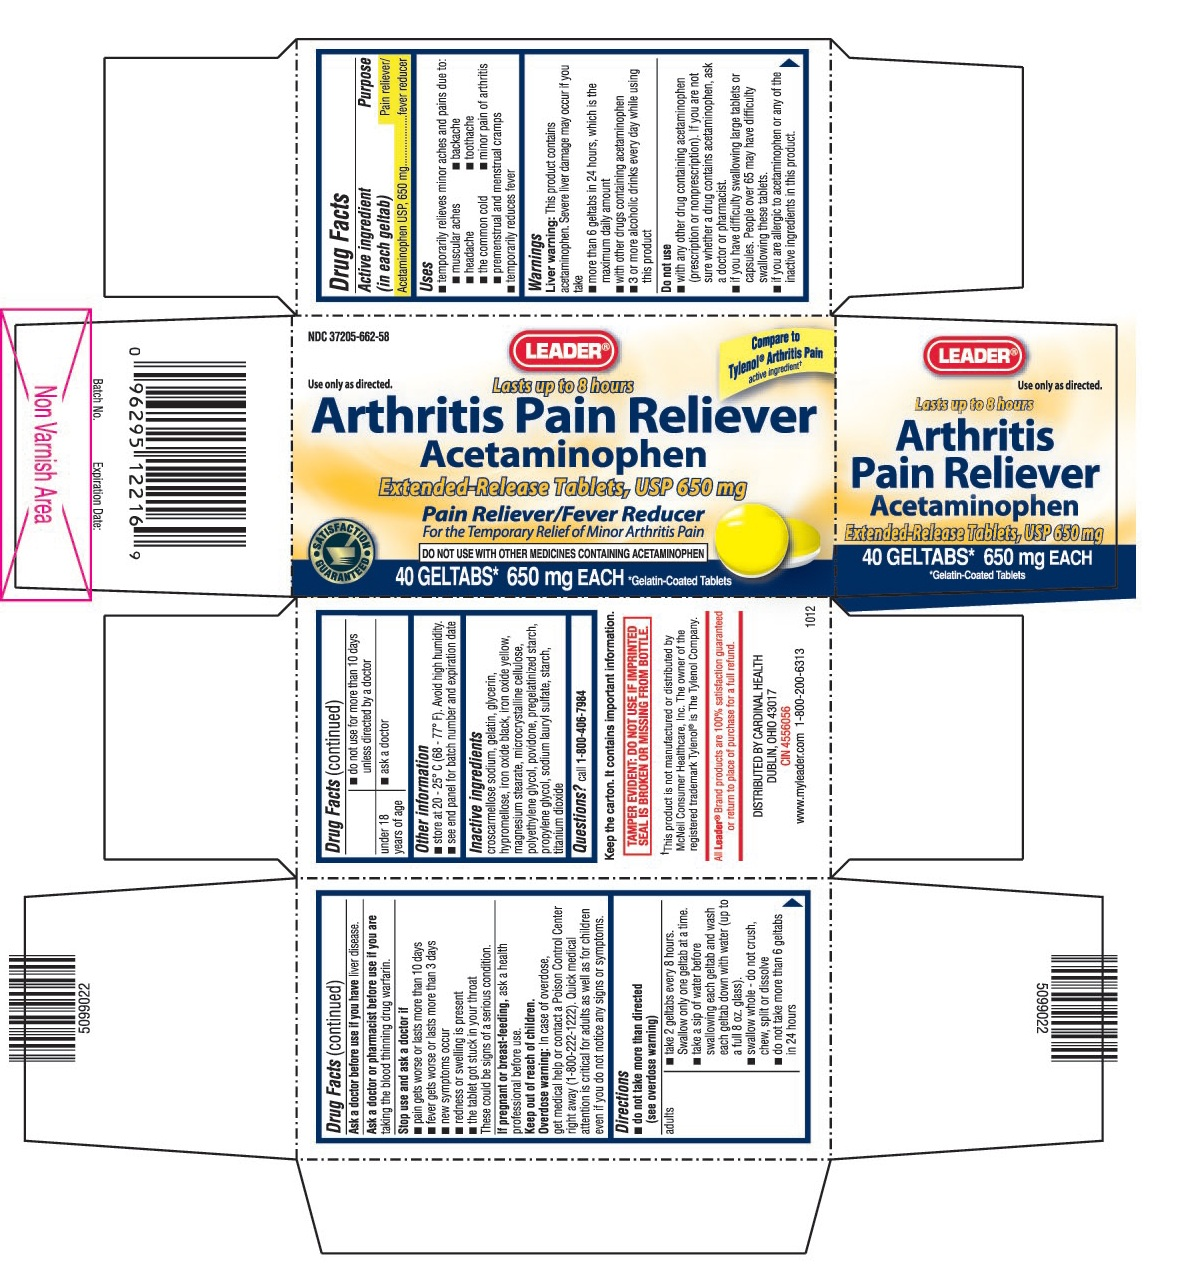 This is the 40 count bottle carton label for Leader Acetaminophen extended-release tablets, USP 650 mg (geltabs).